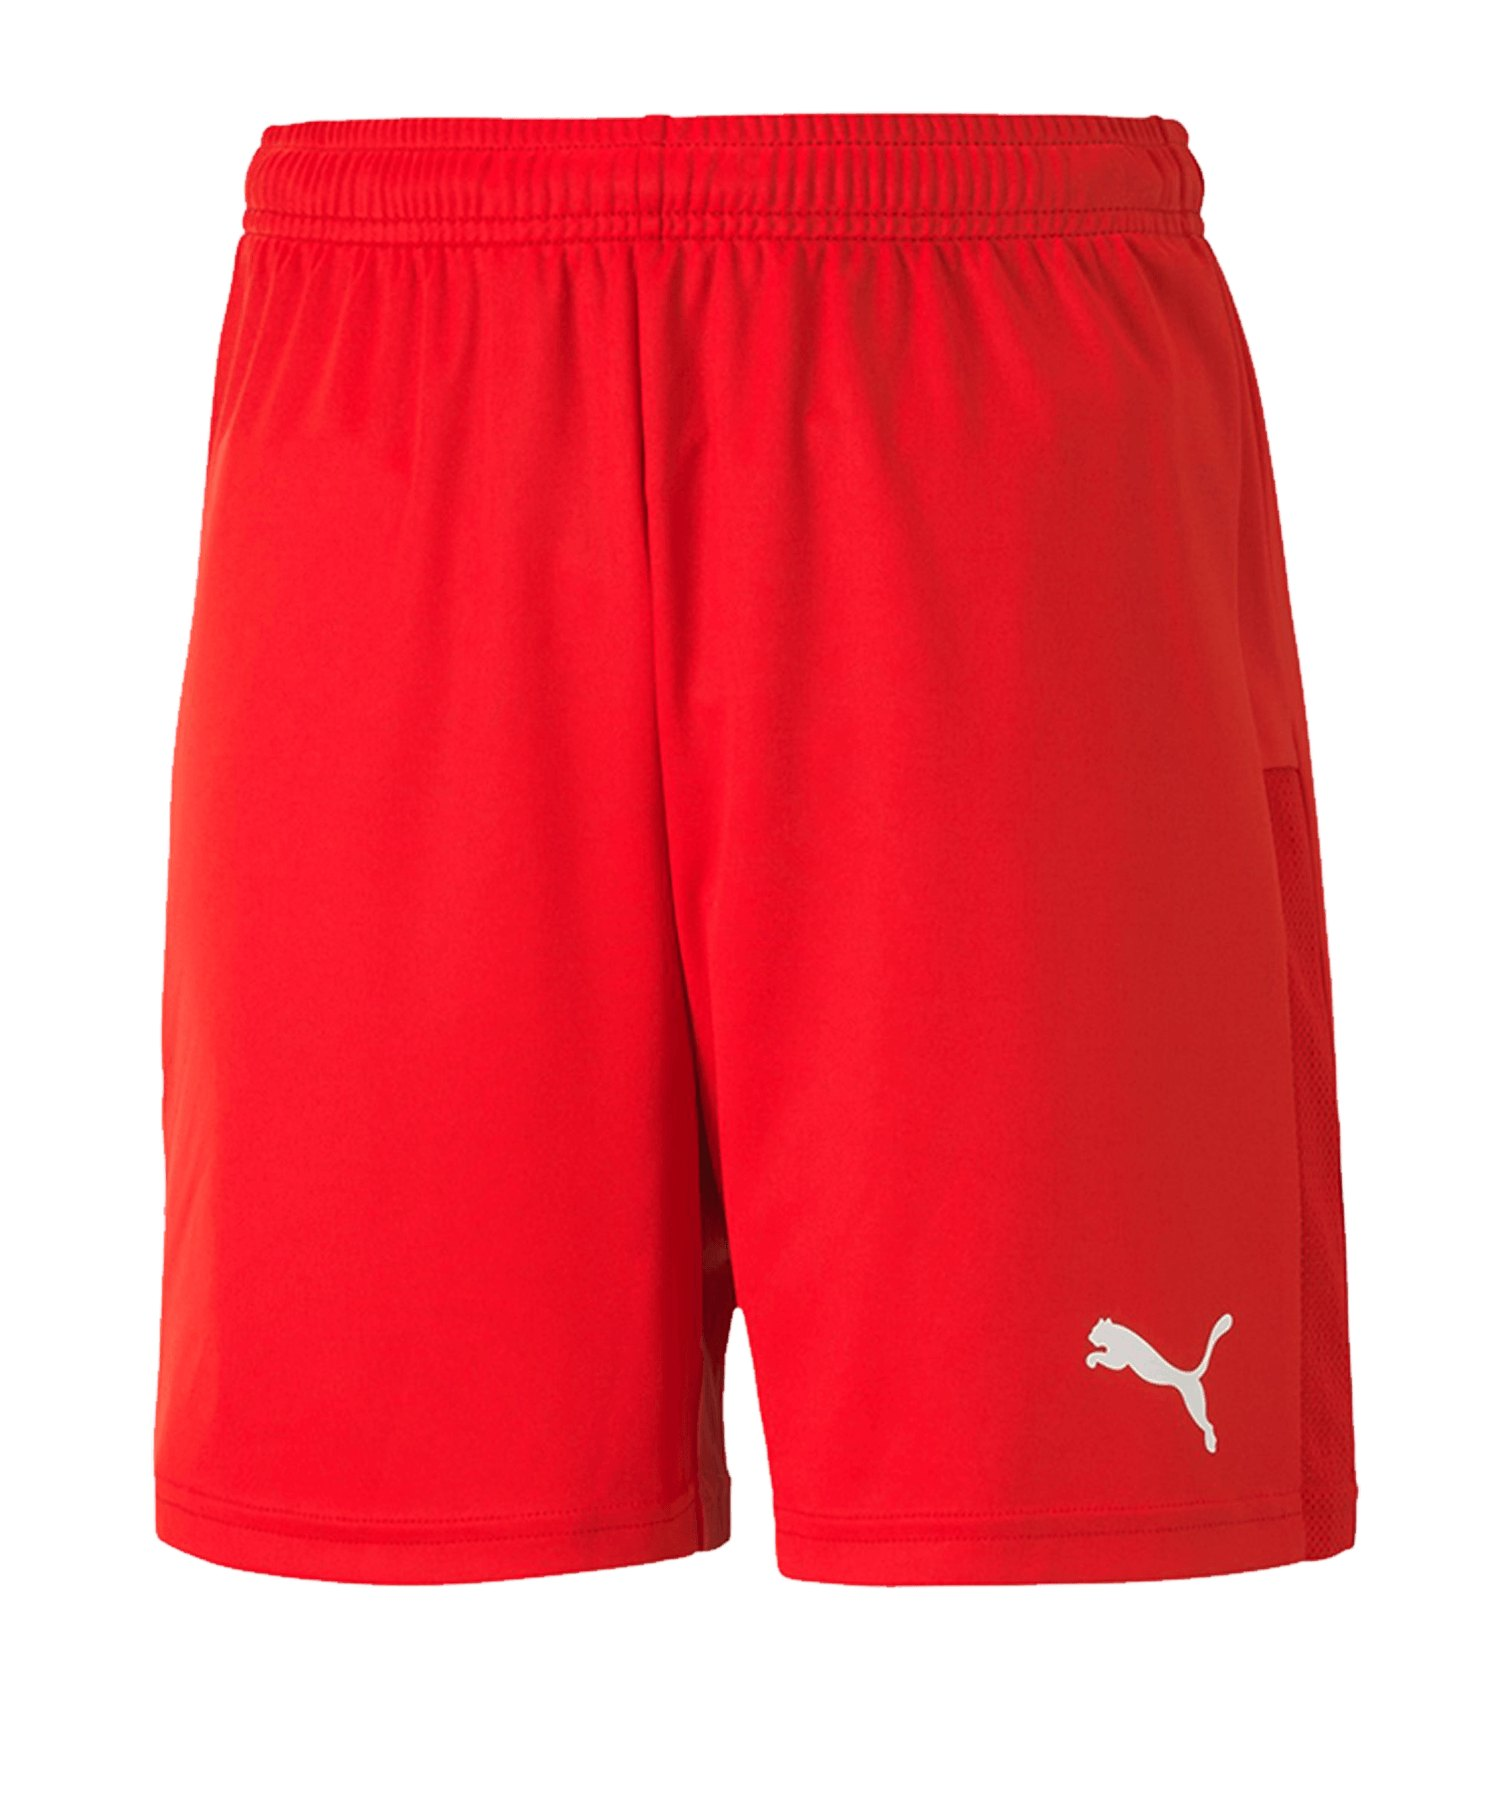 PUMA teamGOAL 23 Knit Short Kids Rot F01 - rot